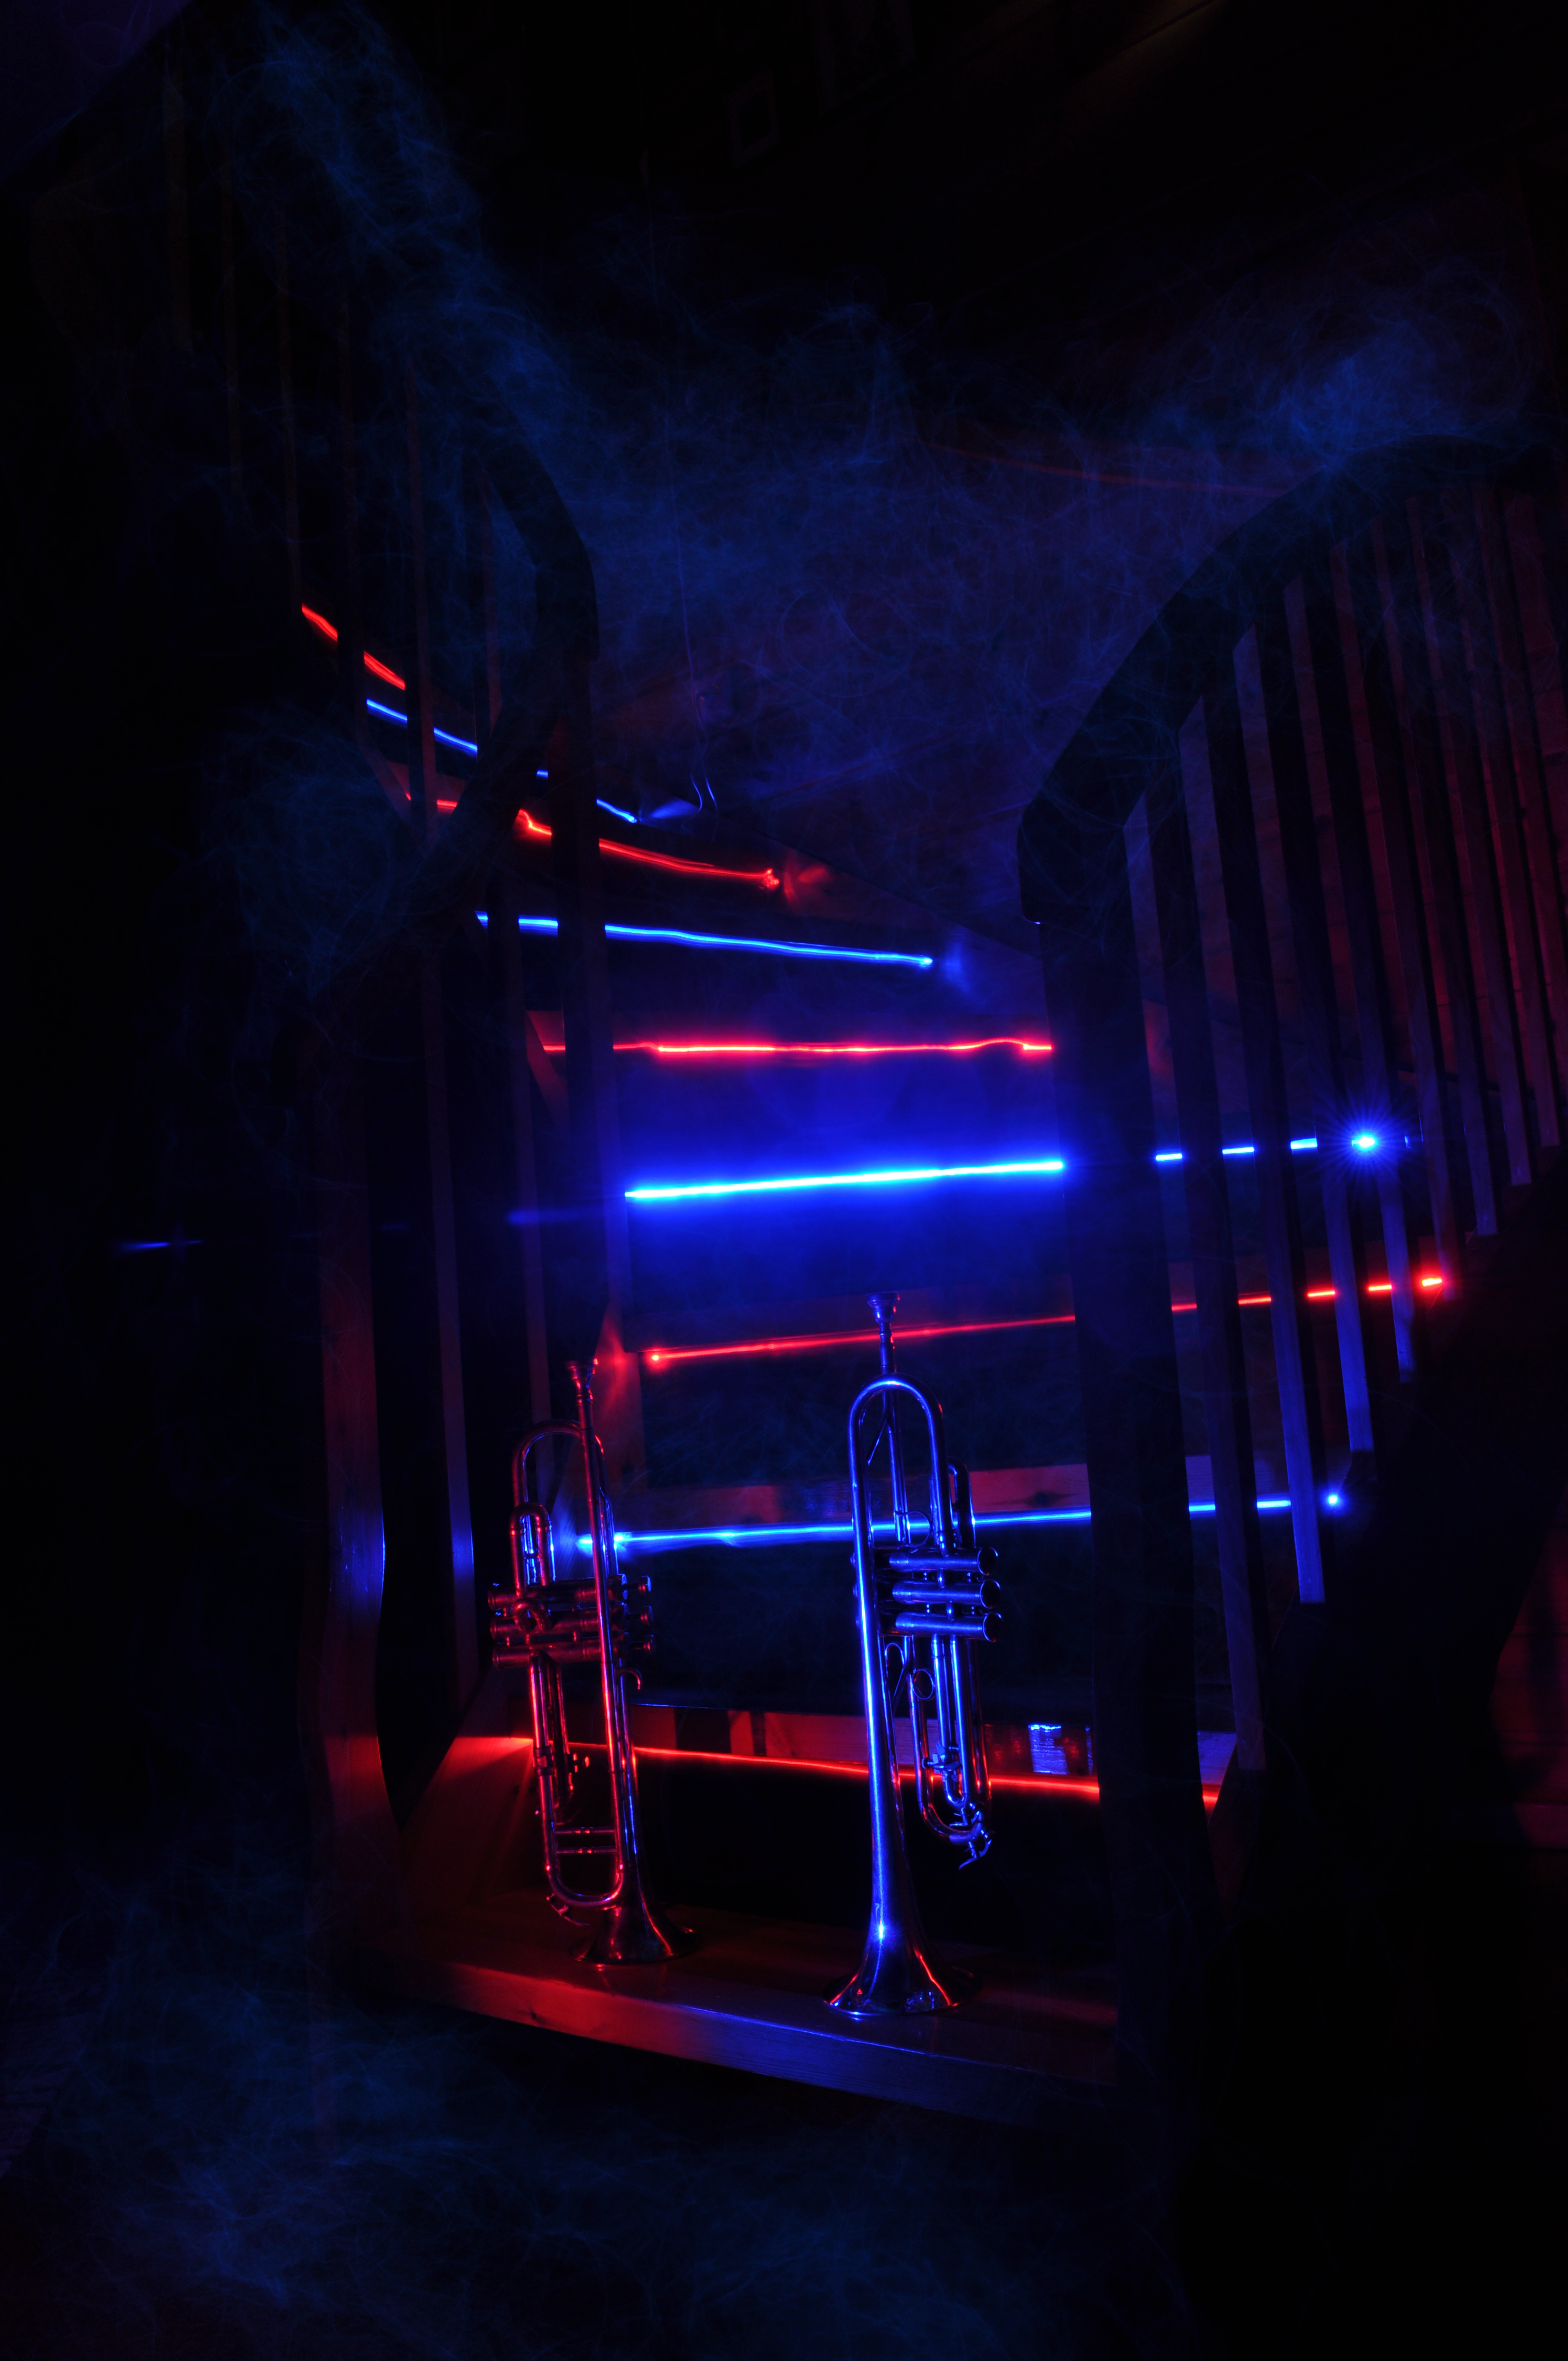 123795 download wallpaper Dark, Trumpet, Pipe, Stairs, Ladder, Neon, Backlight, Illumination, Smoke, Music screensavers and pictures for free